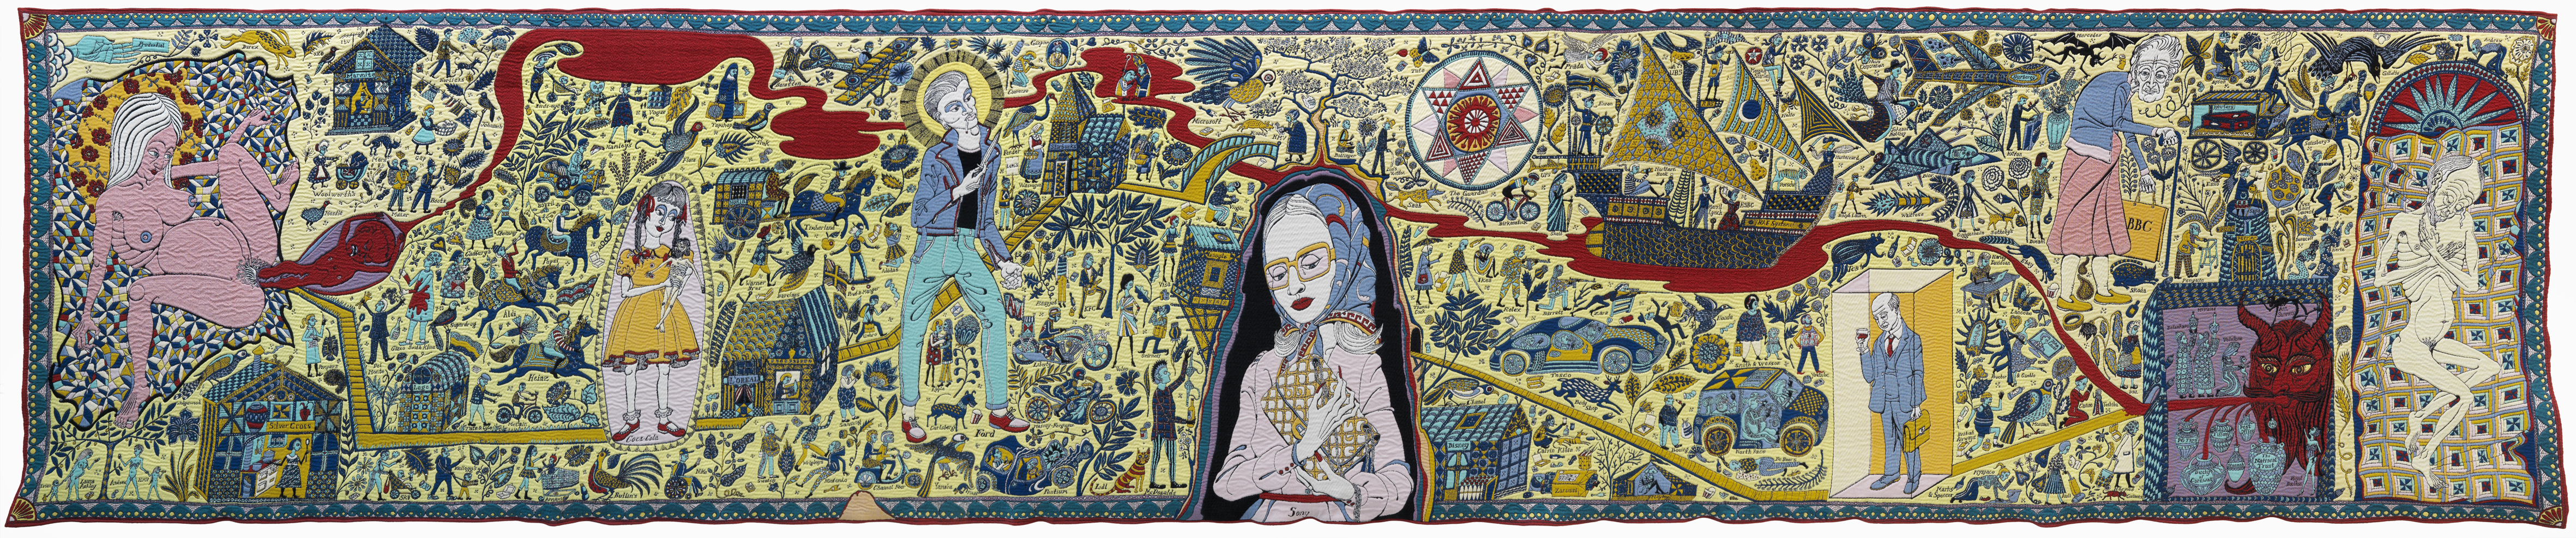 Grayson Perry Mymetropole